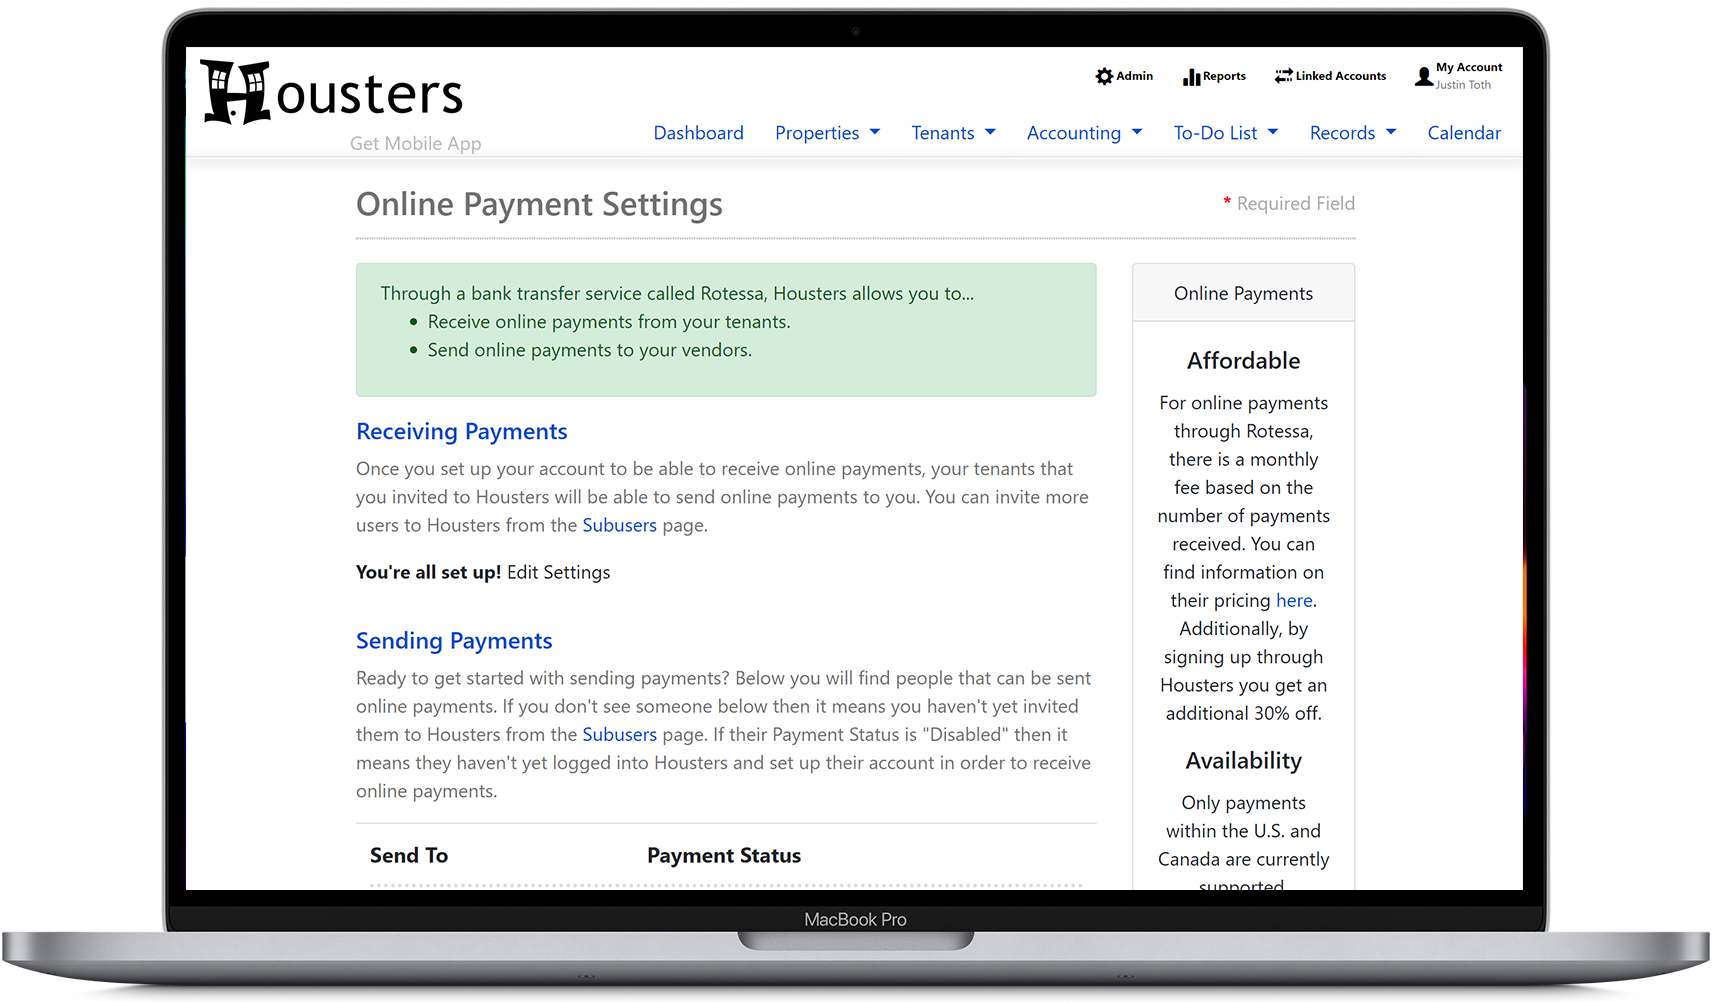 Add a bank account where online payments will be sent to